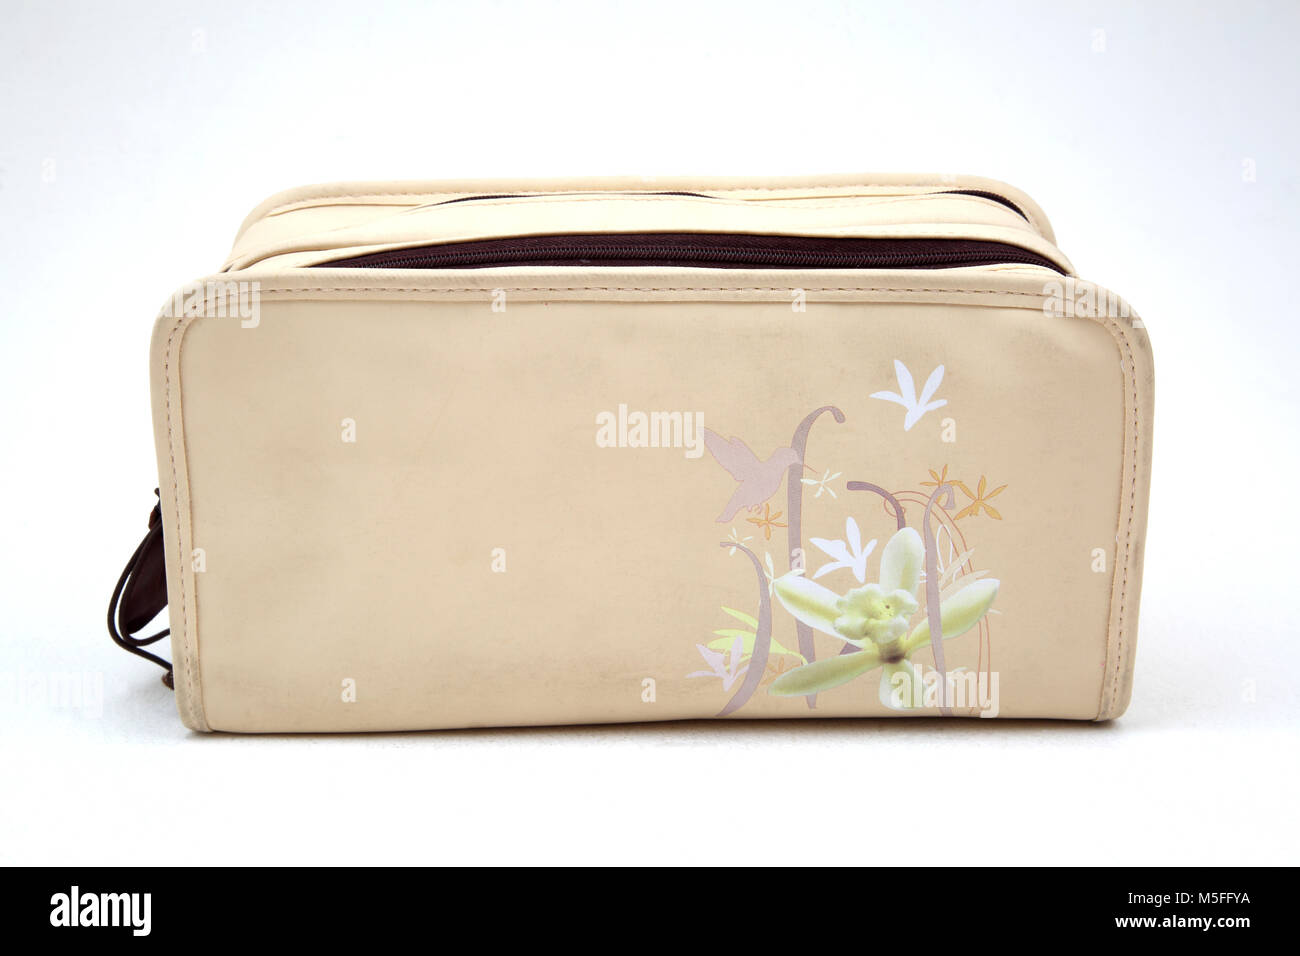 Boots Vanilla Natural Collection Toiletries Toiletry Bag - Stock Image